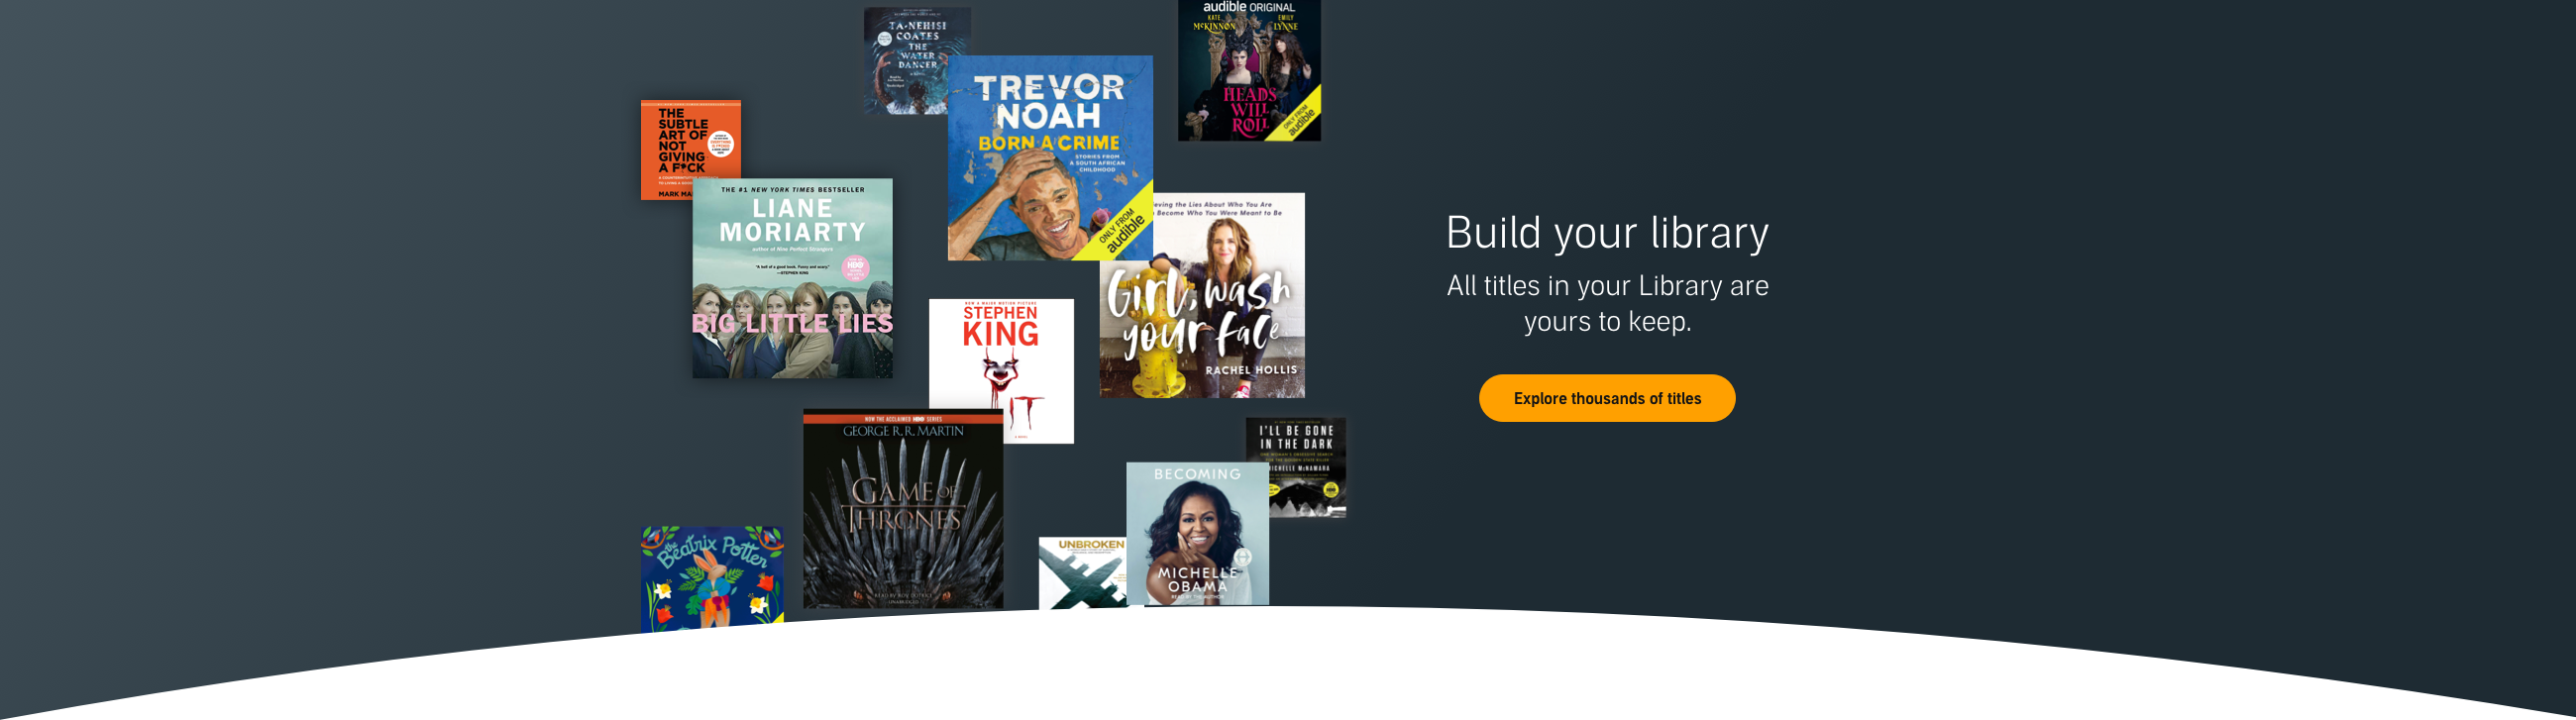 Explore Thousands of Audible Titles